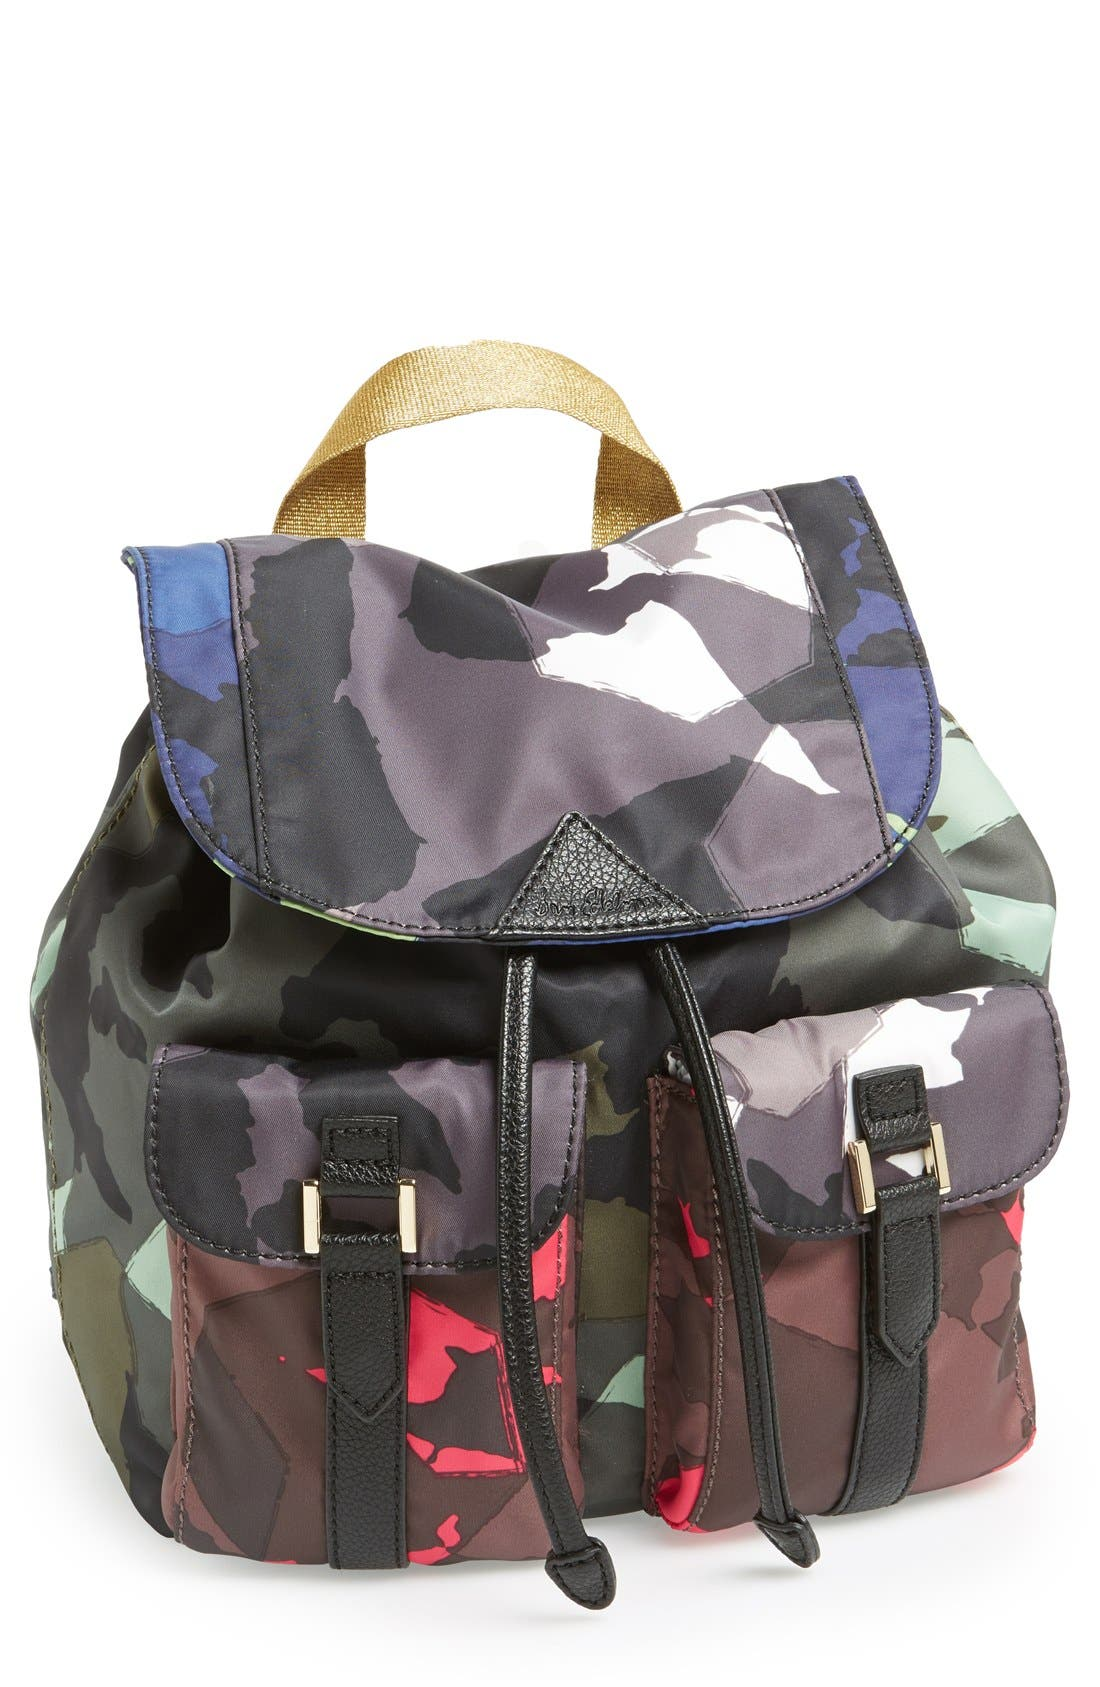 Alternate Image 1 Selected - Sam Edelman 'Large' Nylon Backpack